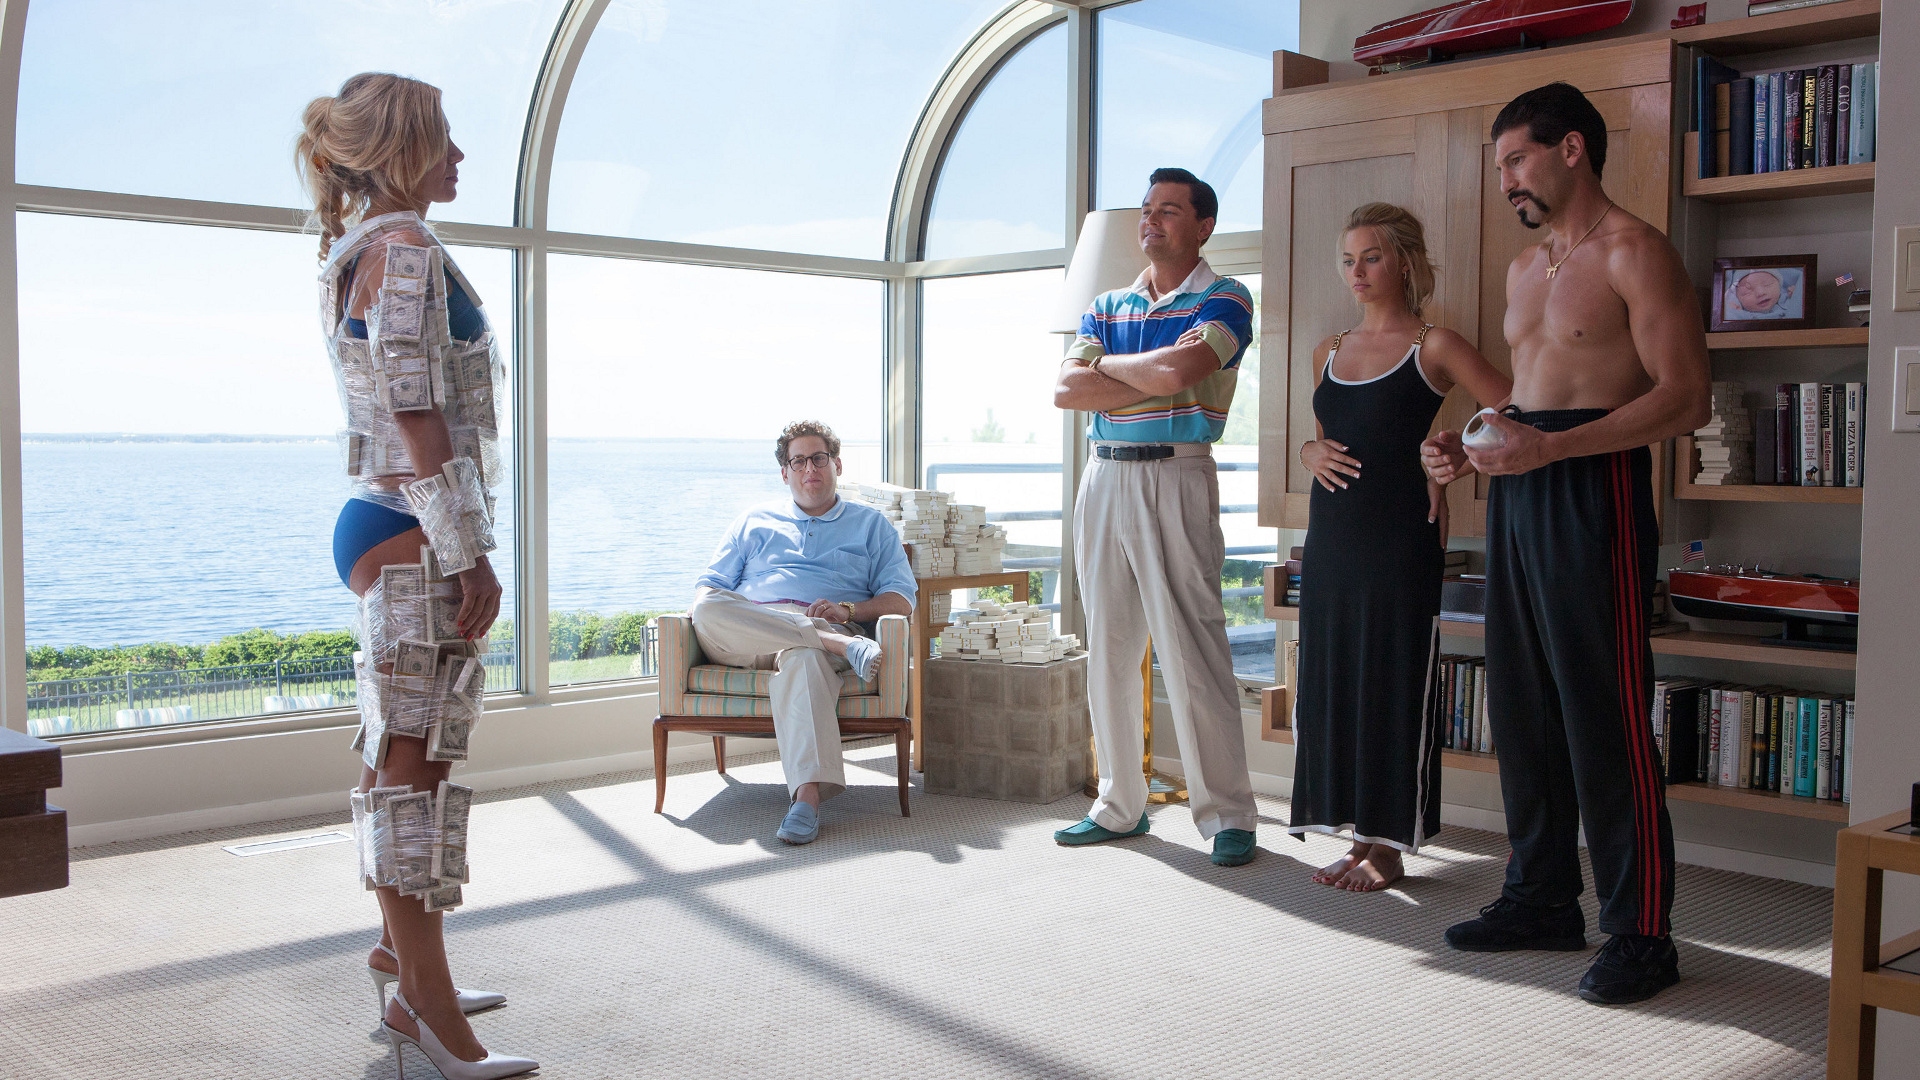 Center left to far right: Jonah Hill plays Danny, Leonardo DiCaprio plays Jordan Belfort, Margot Robbie plays Naomi, and Jon Bernthal plays Todd in THE WOLF OF WALL STREET, from Paramount Pictures and Red Granite Pictures.